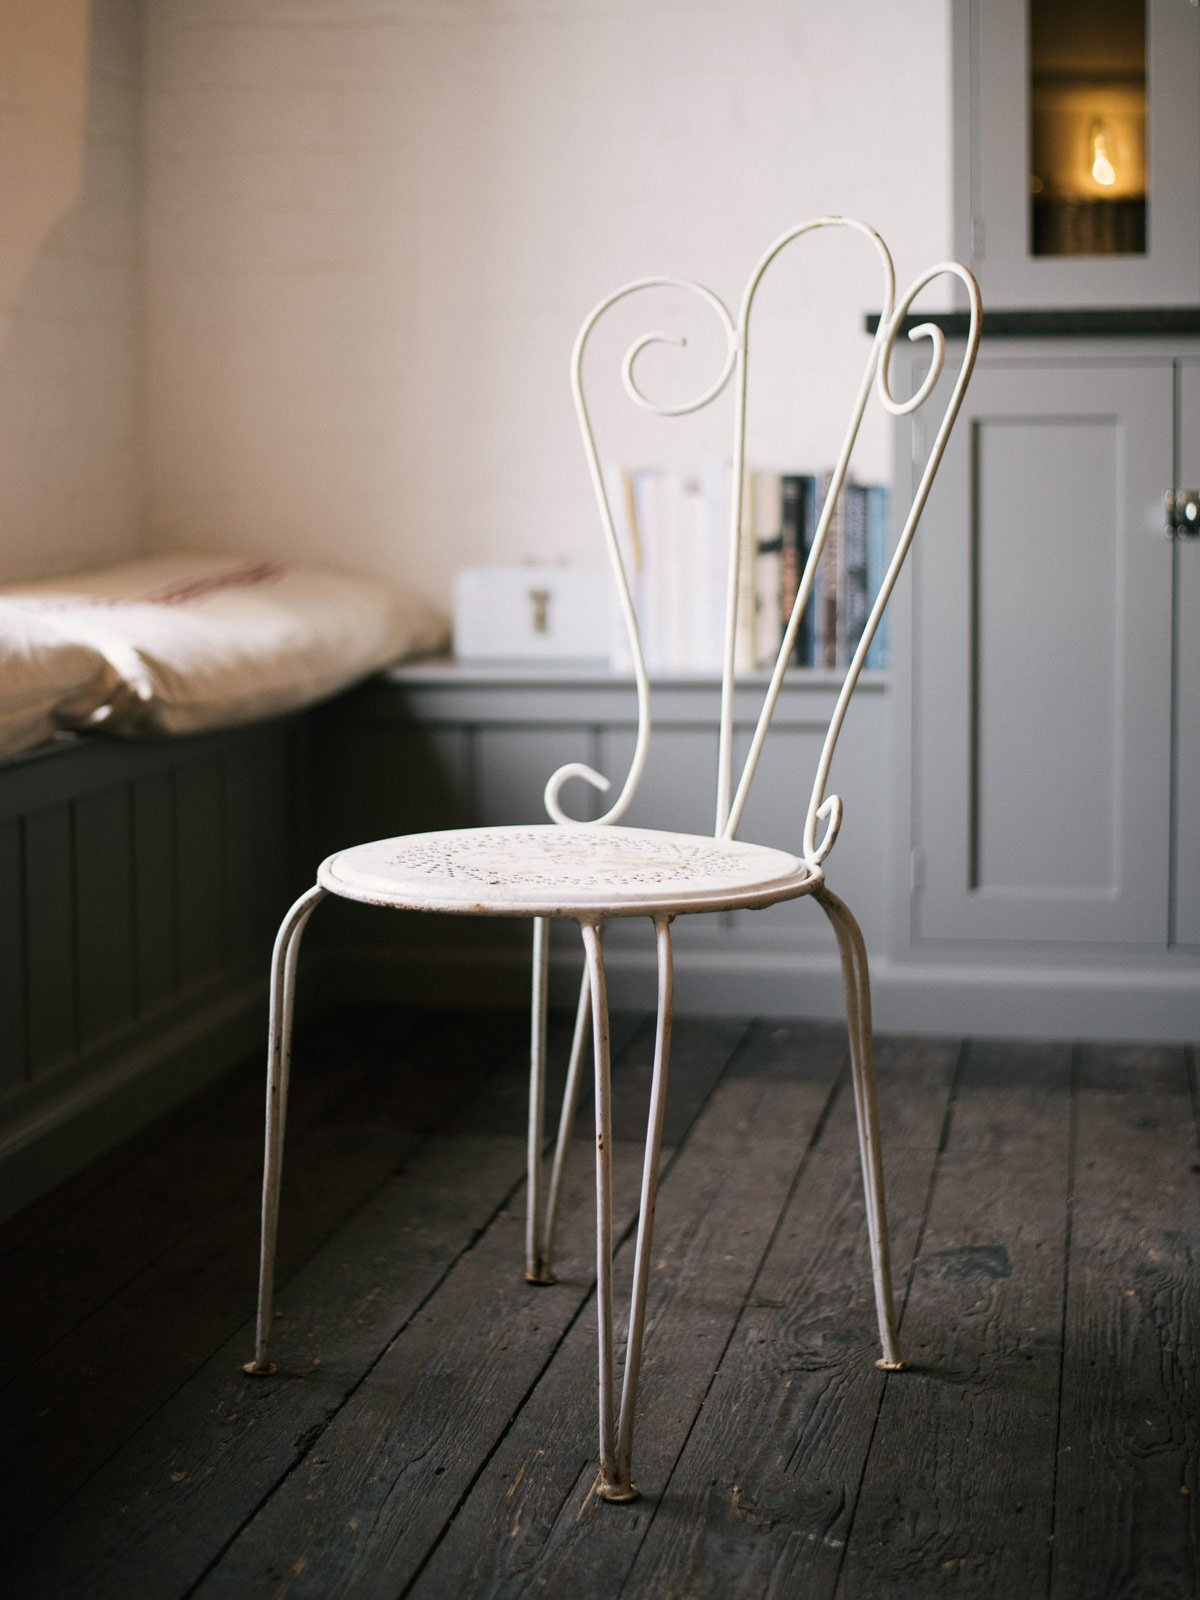 White Painted Metal Garden Chair photo 1